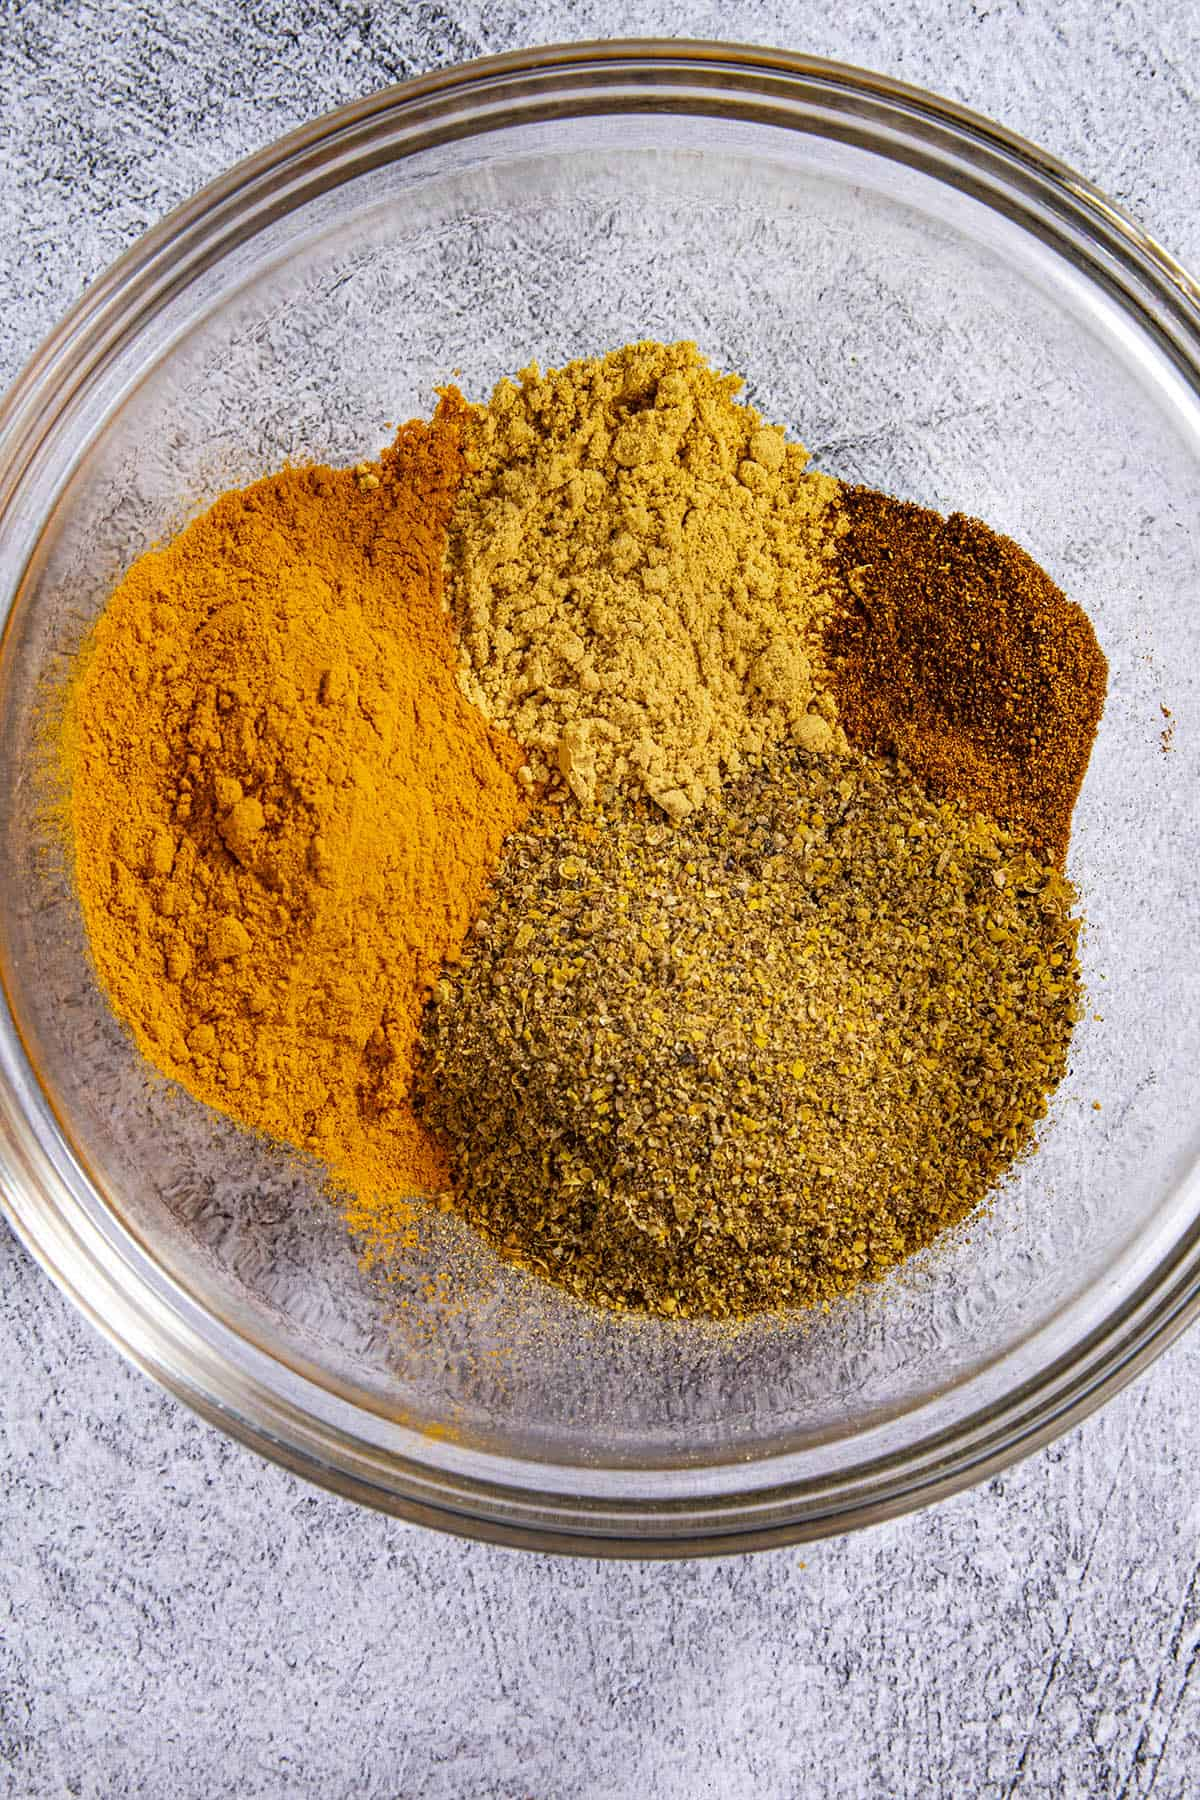 Ground Jamaican Curry Powder ingredients in a bowl